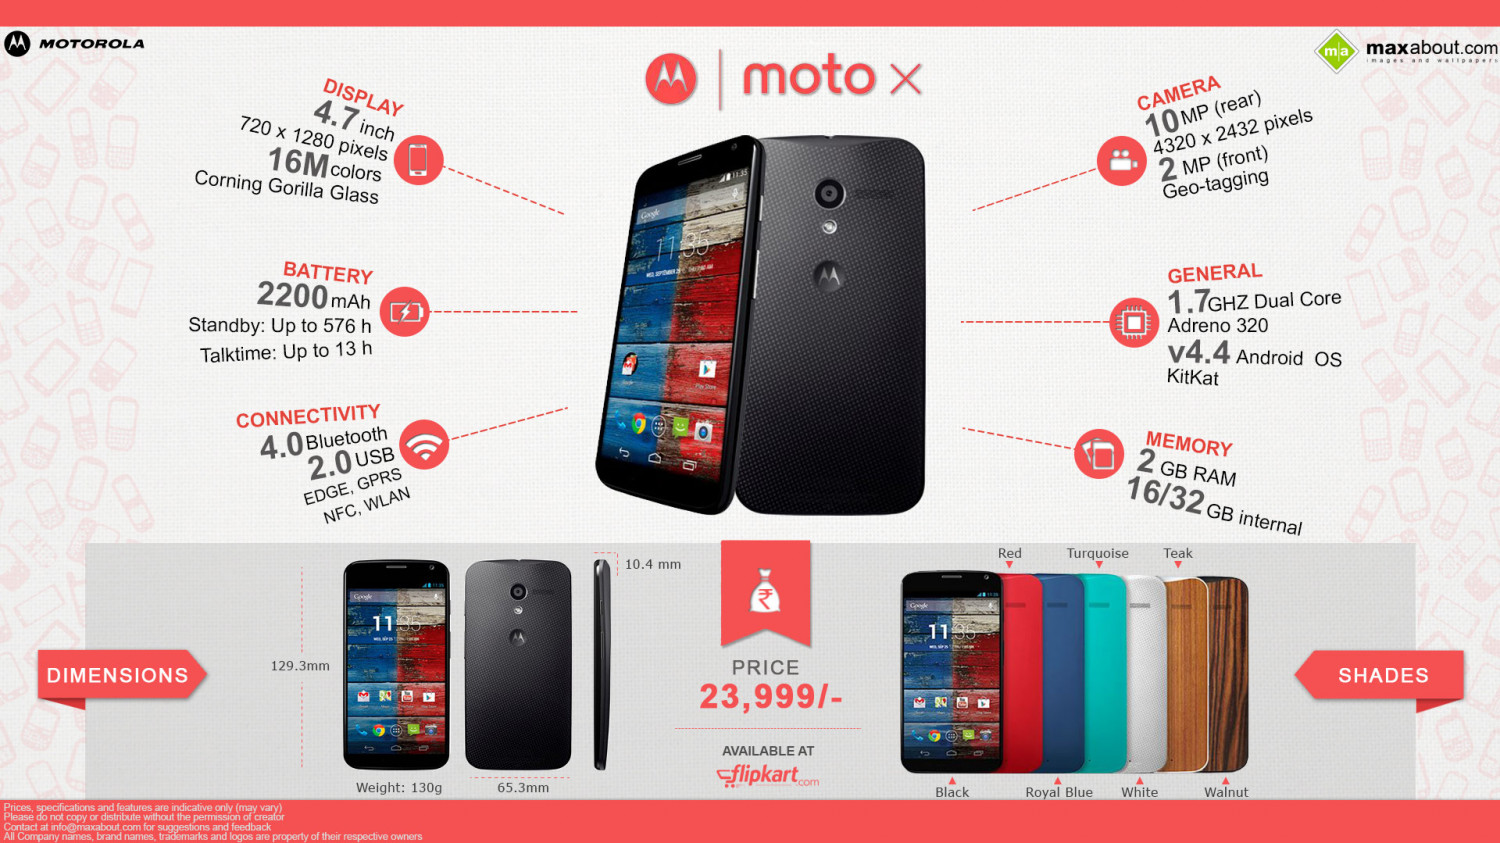 Motorola Moto X: All You Need to Know Infographic